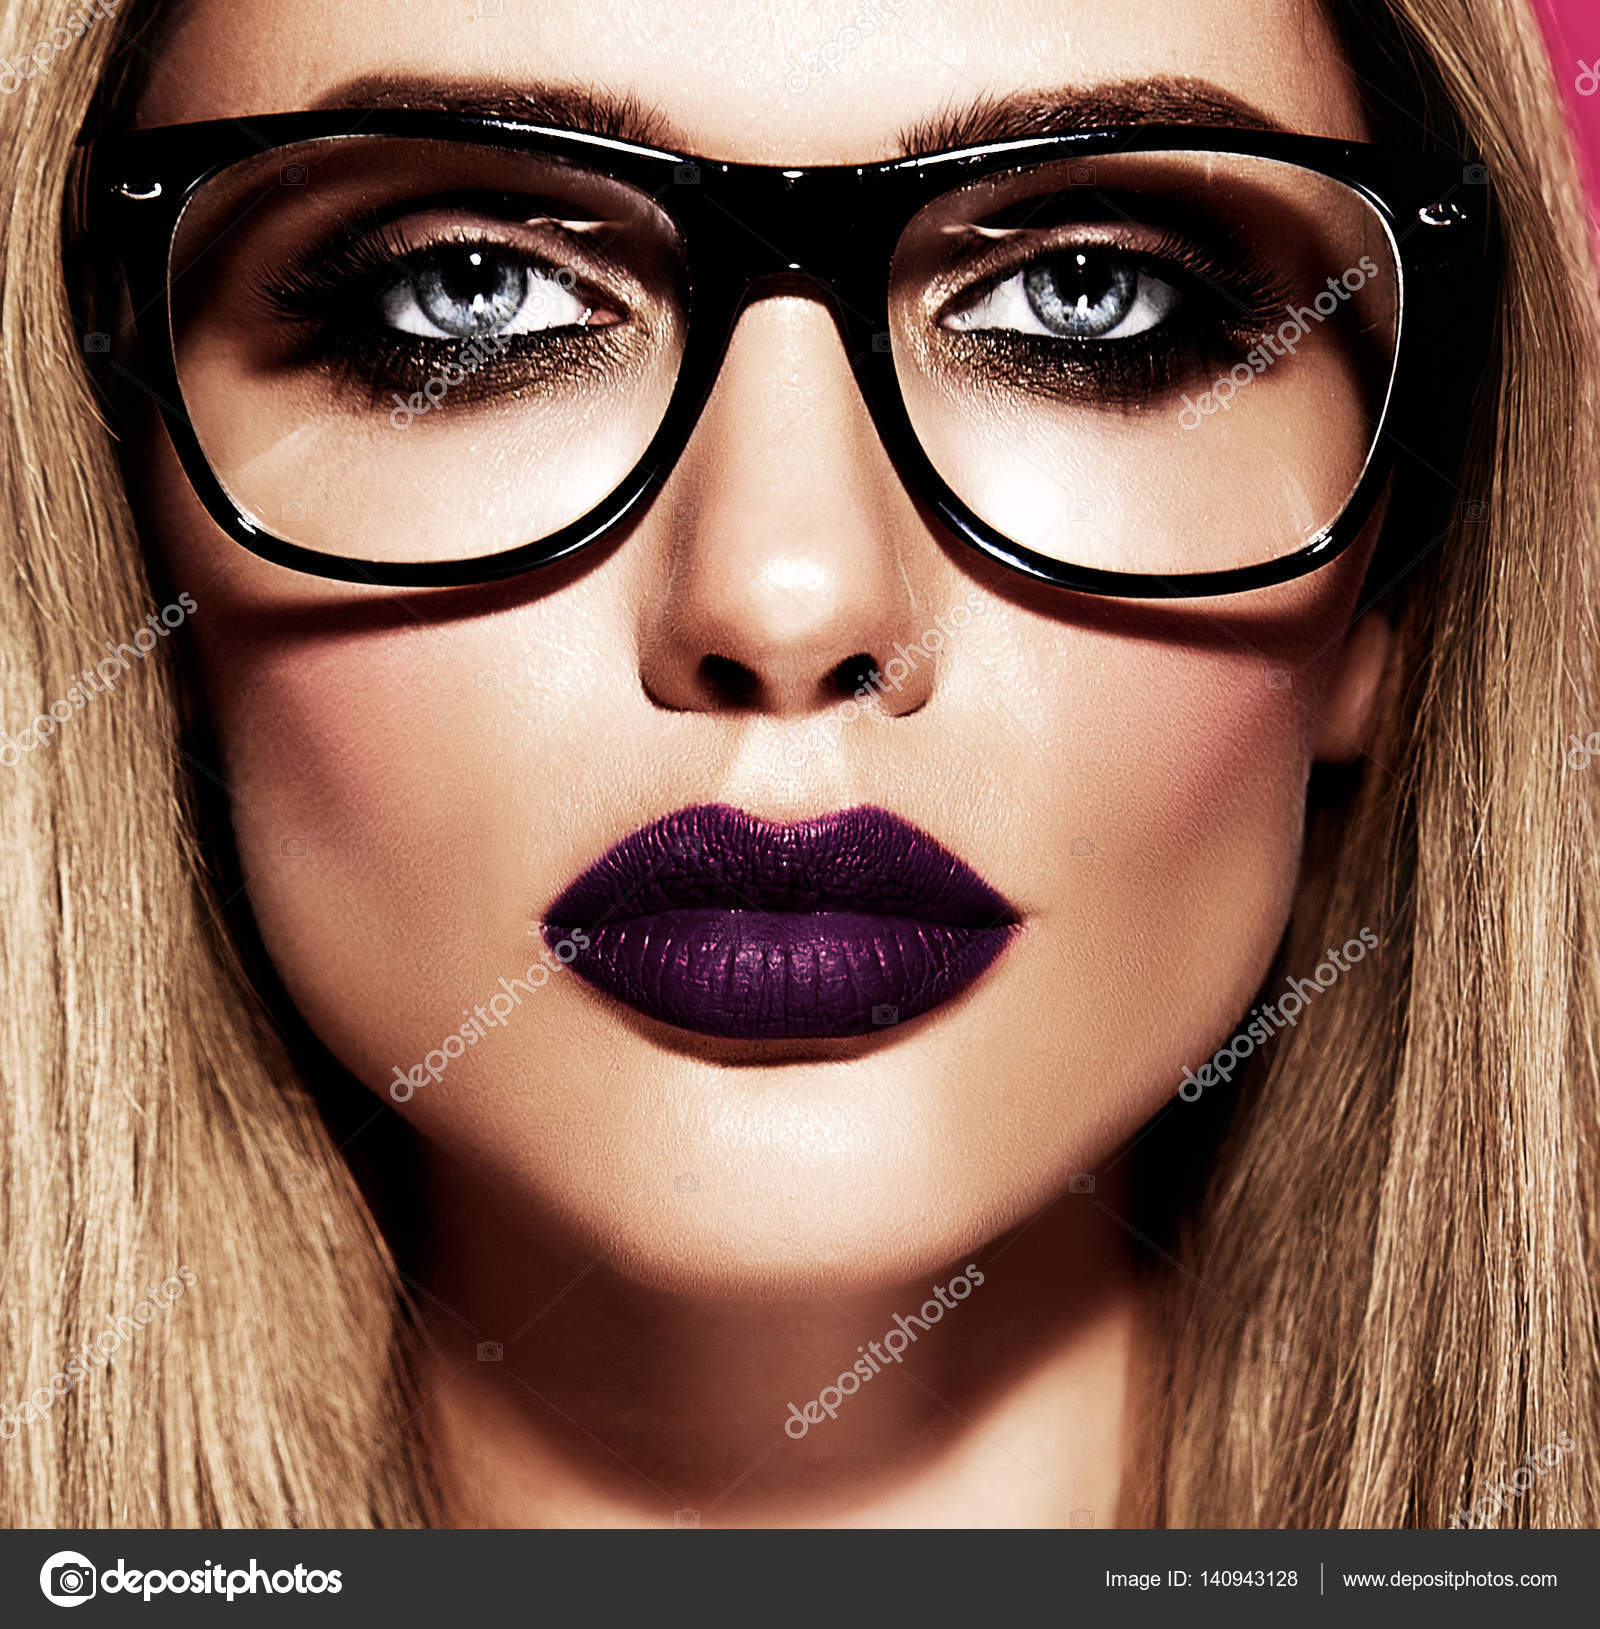 6627170c989 Hot beautiful blond woman model with fresh daily makeup with dark purple  lips color and clean healthy skin in glasses — Photo by alexhalay